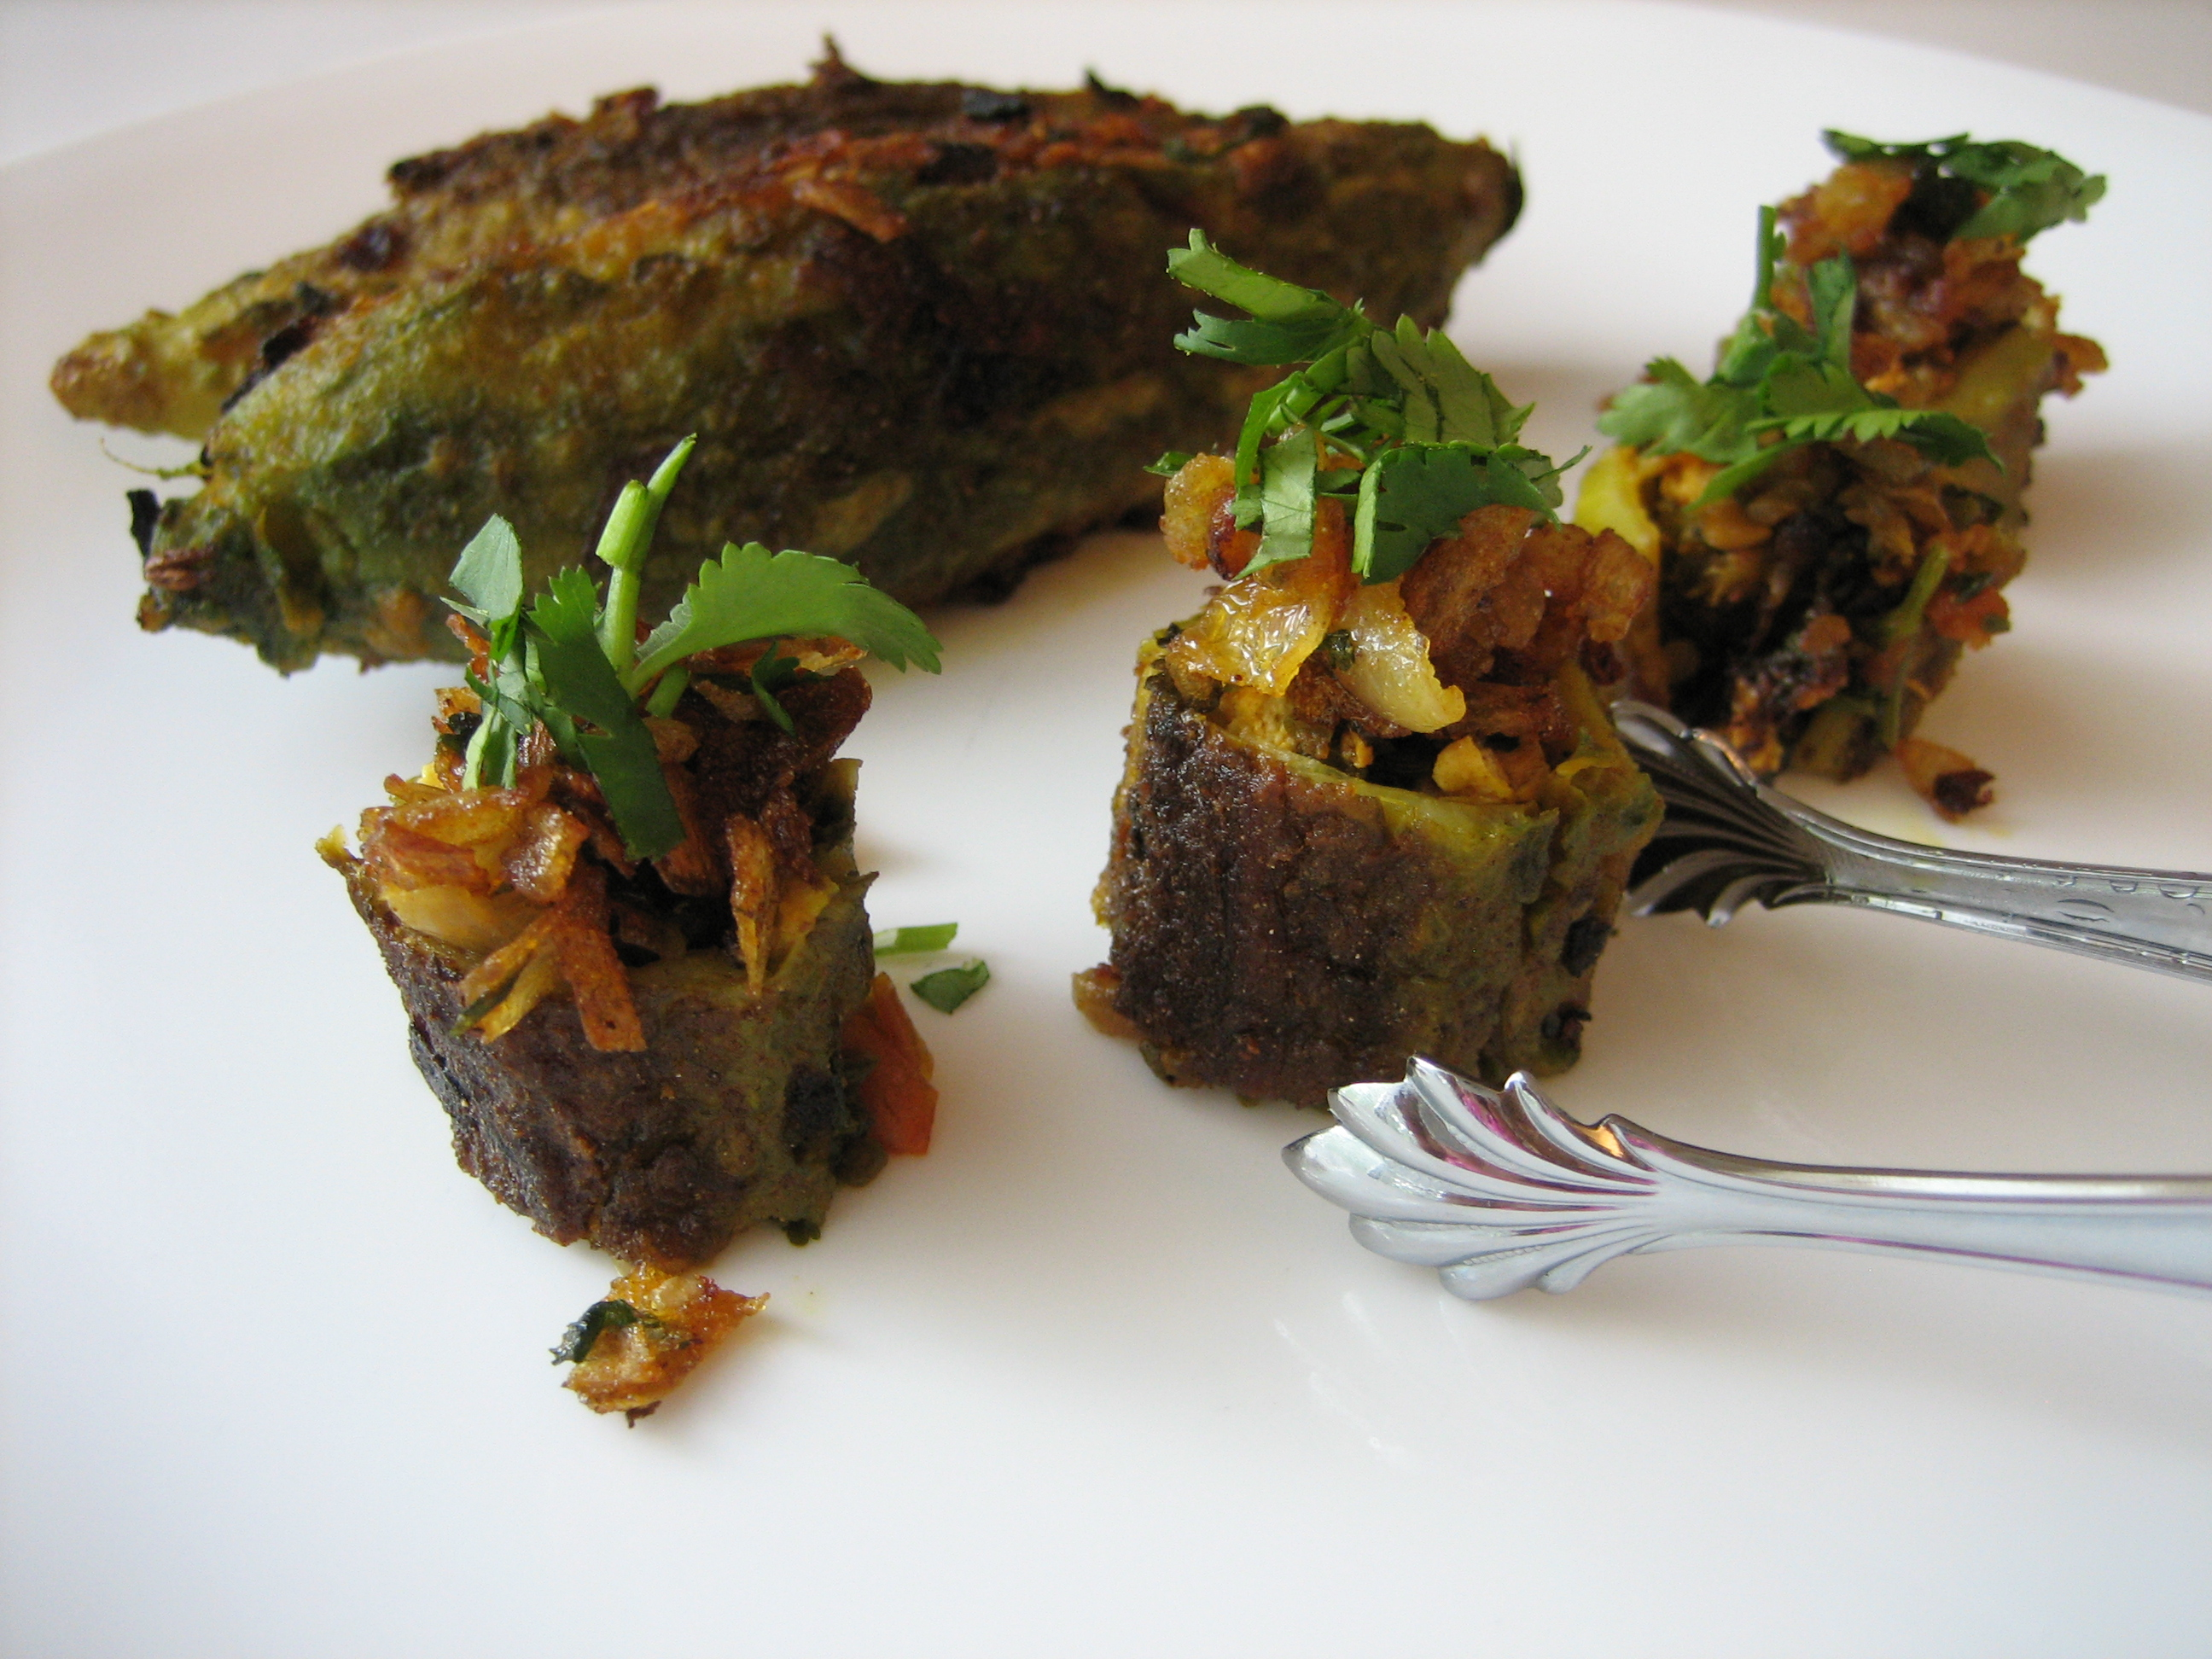 Stuffed-Karela2.jpg